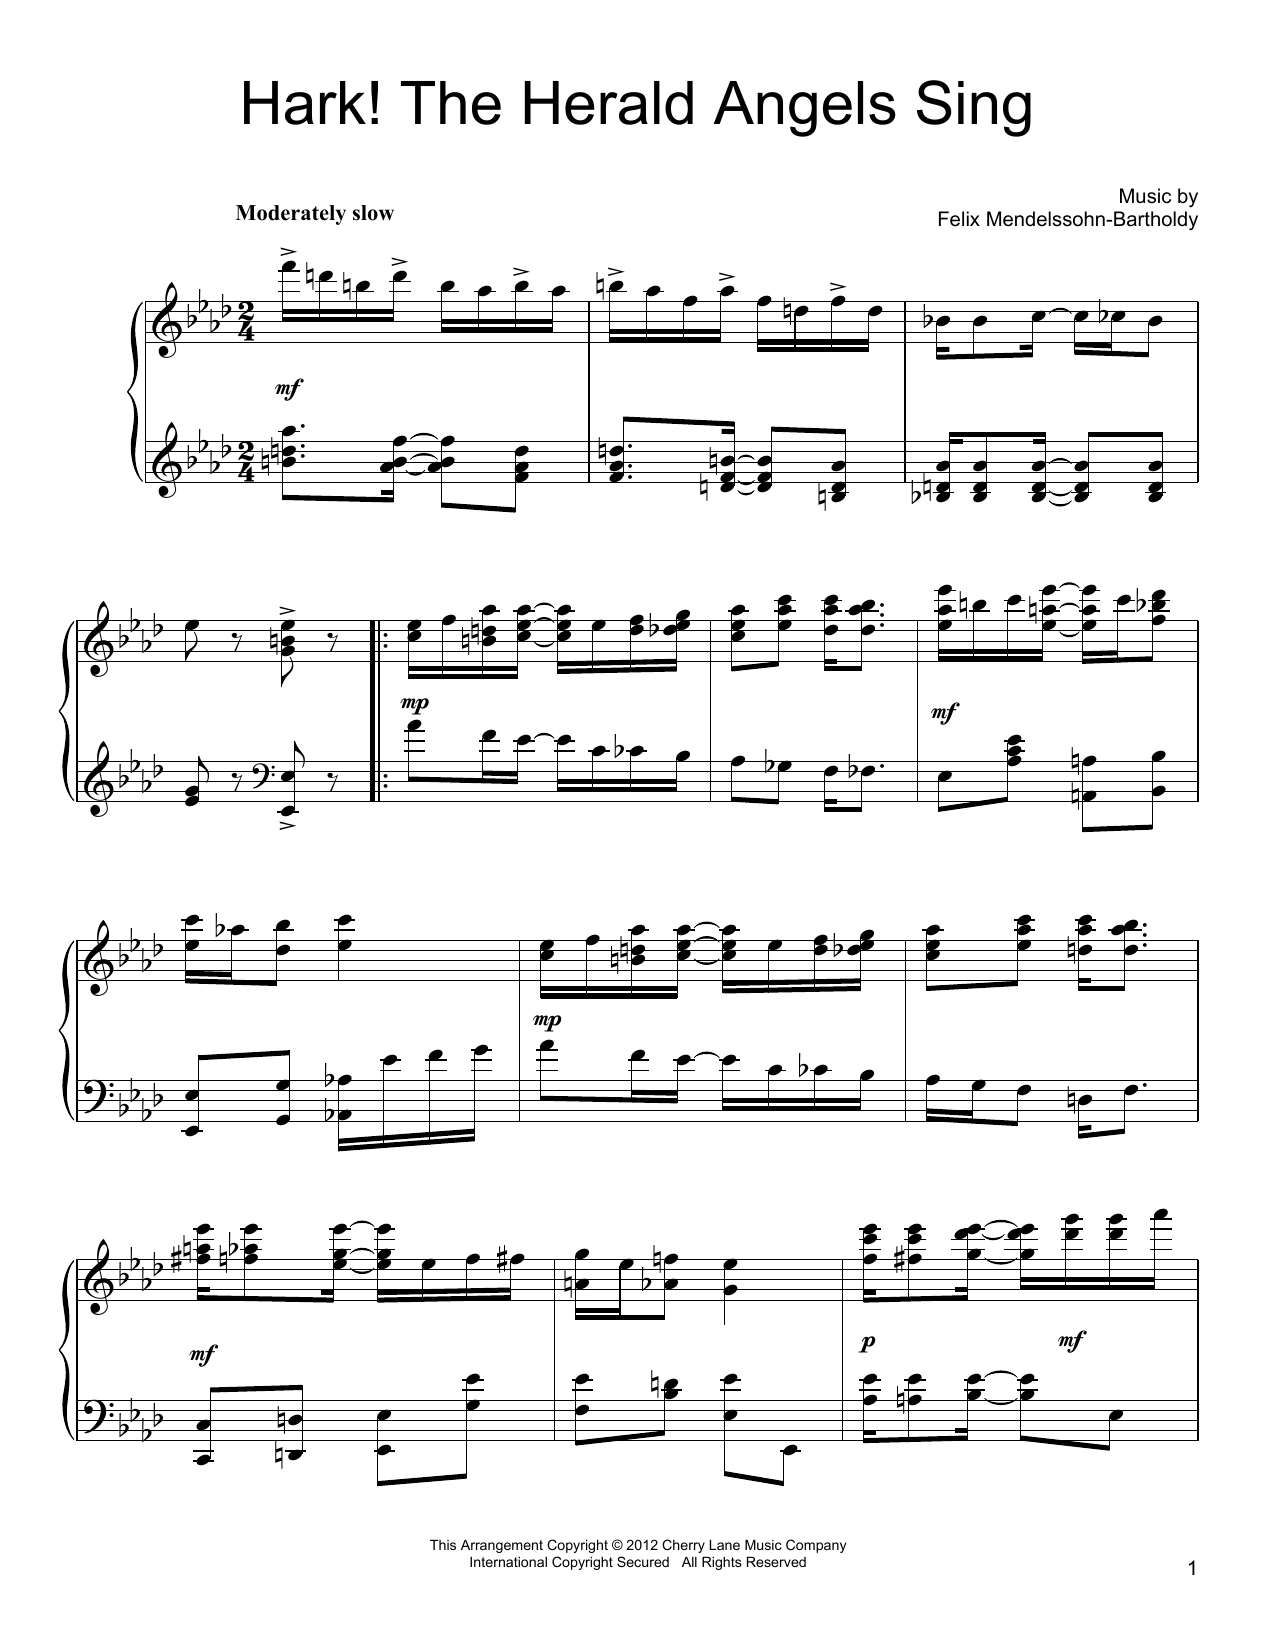 Felix Mendelssohn Hark! The Herald Angels Sing sheet music preview music notes and score for Piano including 2 page(s)